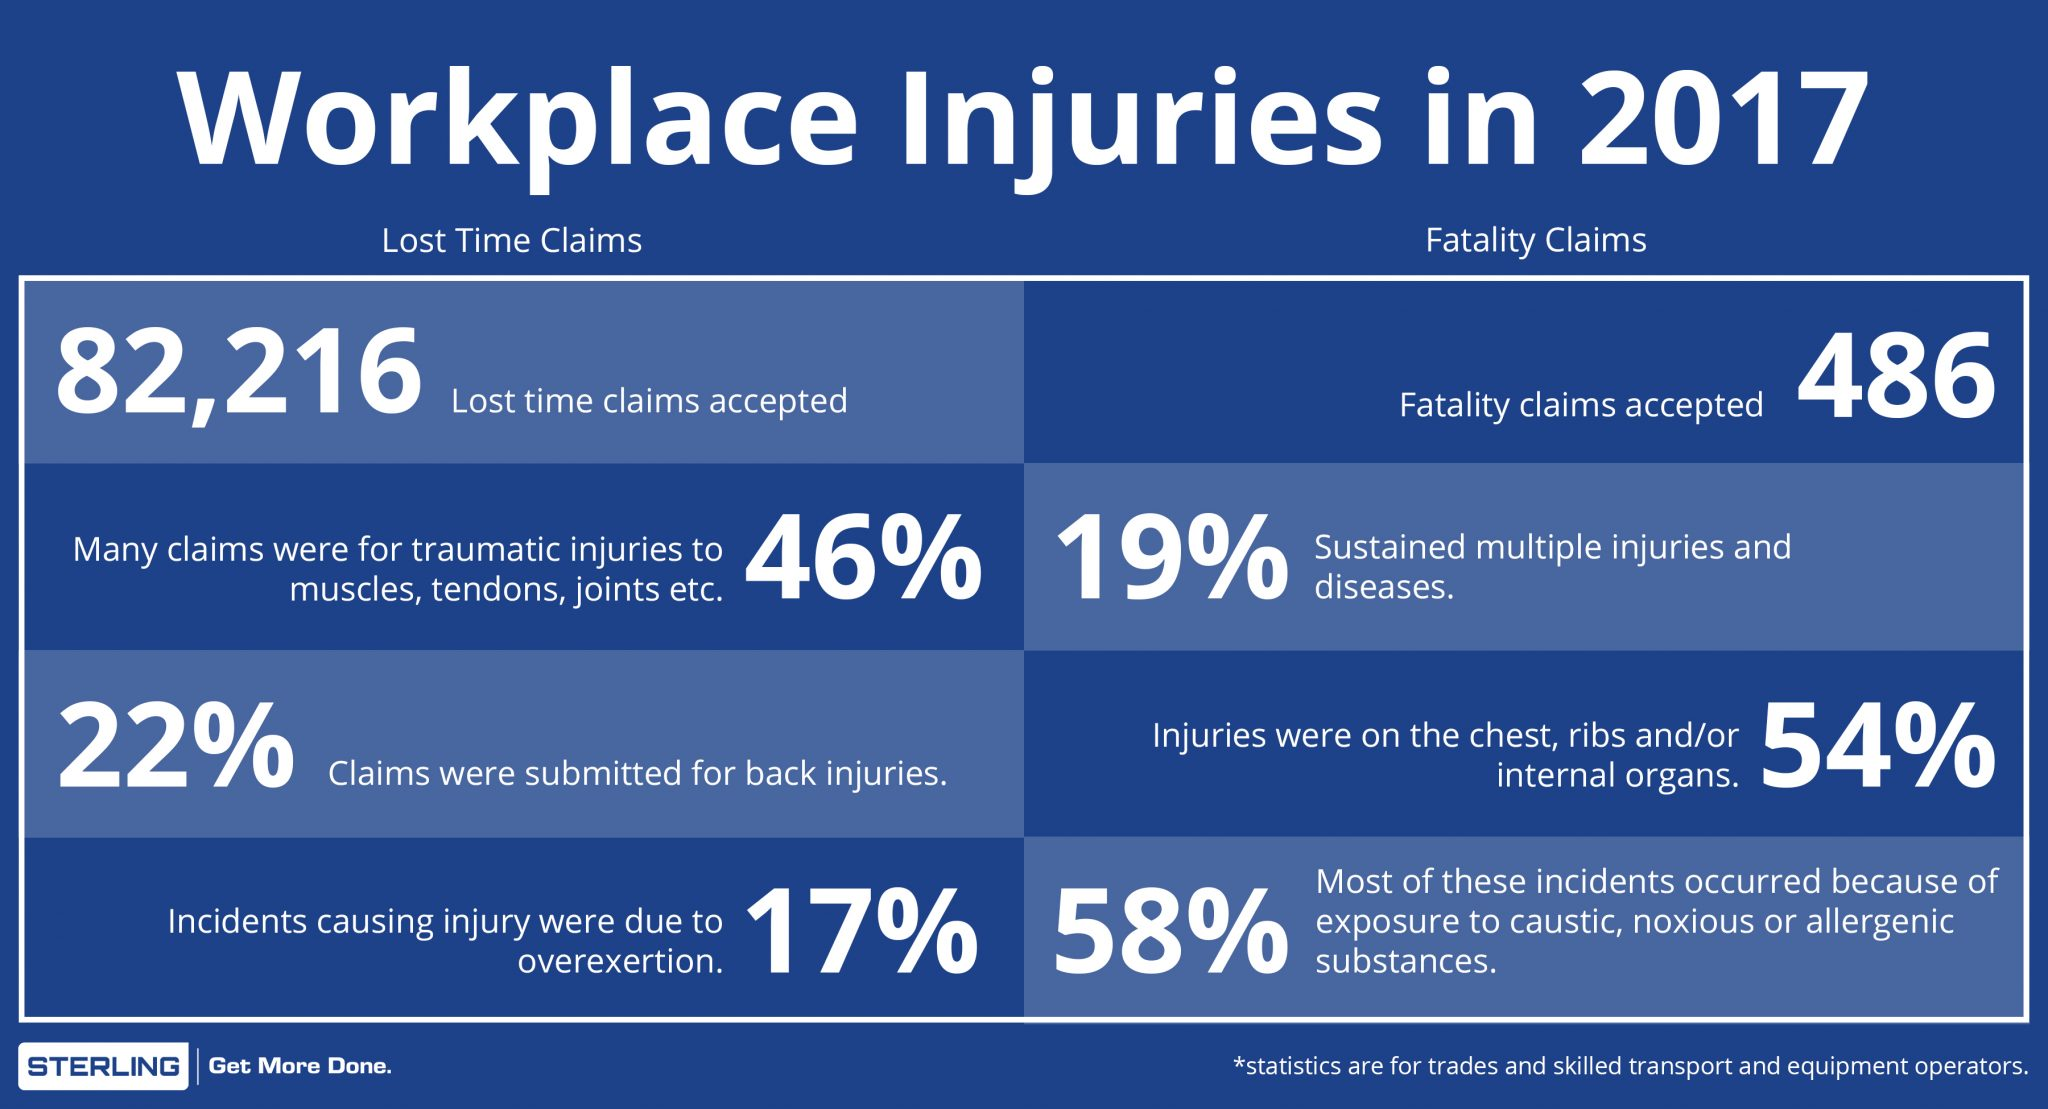 Canadian injury statistics for lost time claims and fatalities in Canada for 2017